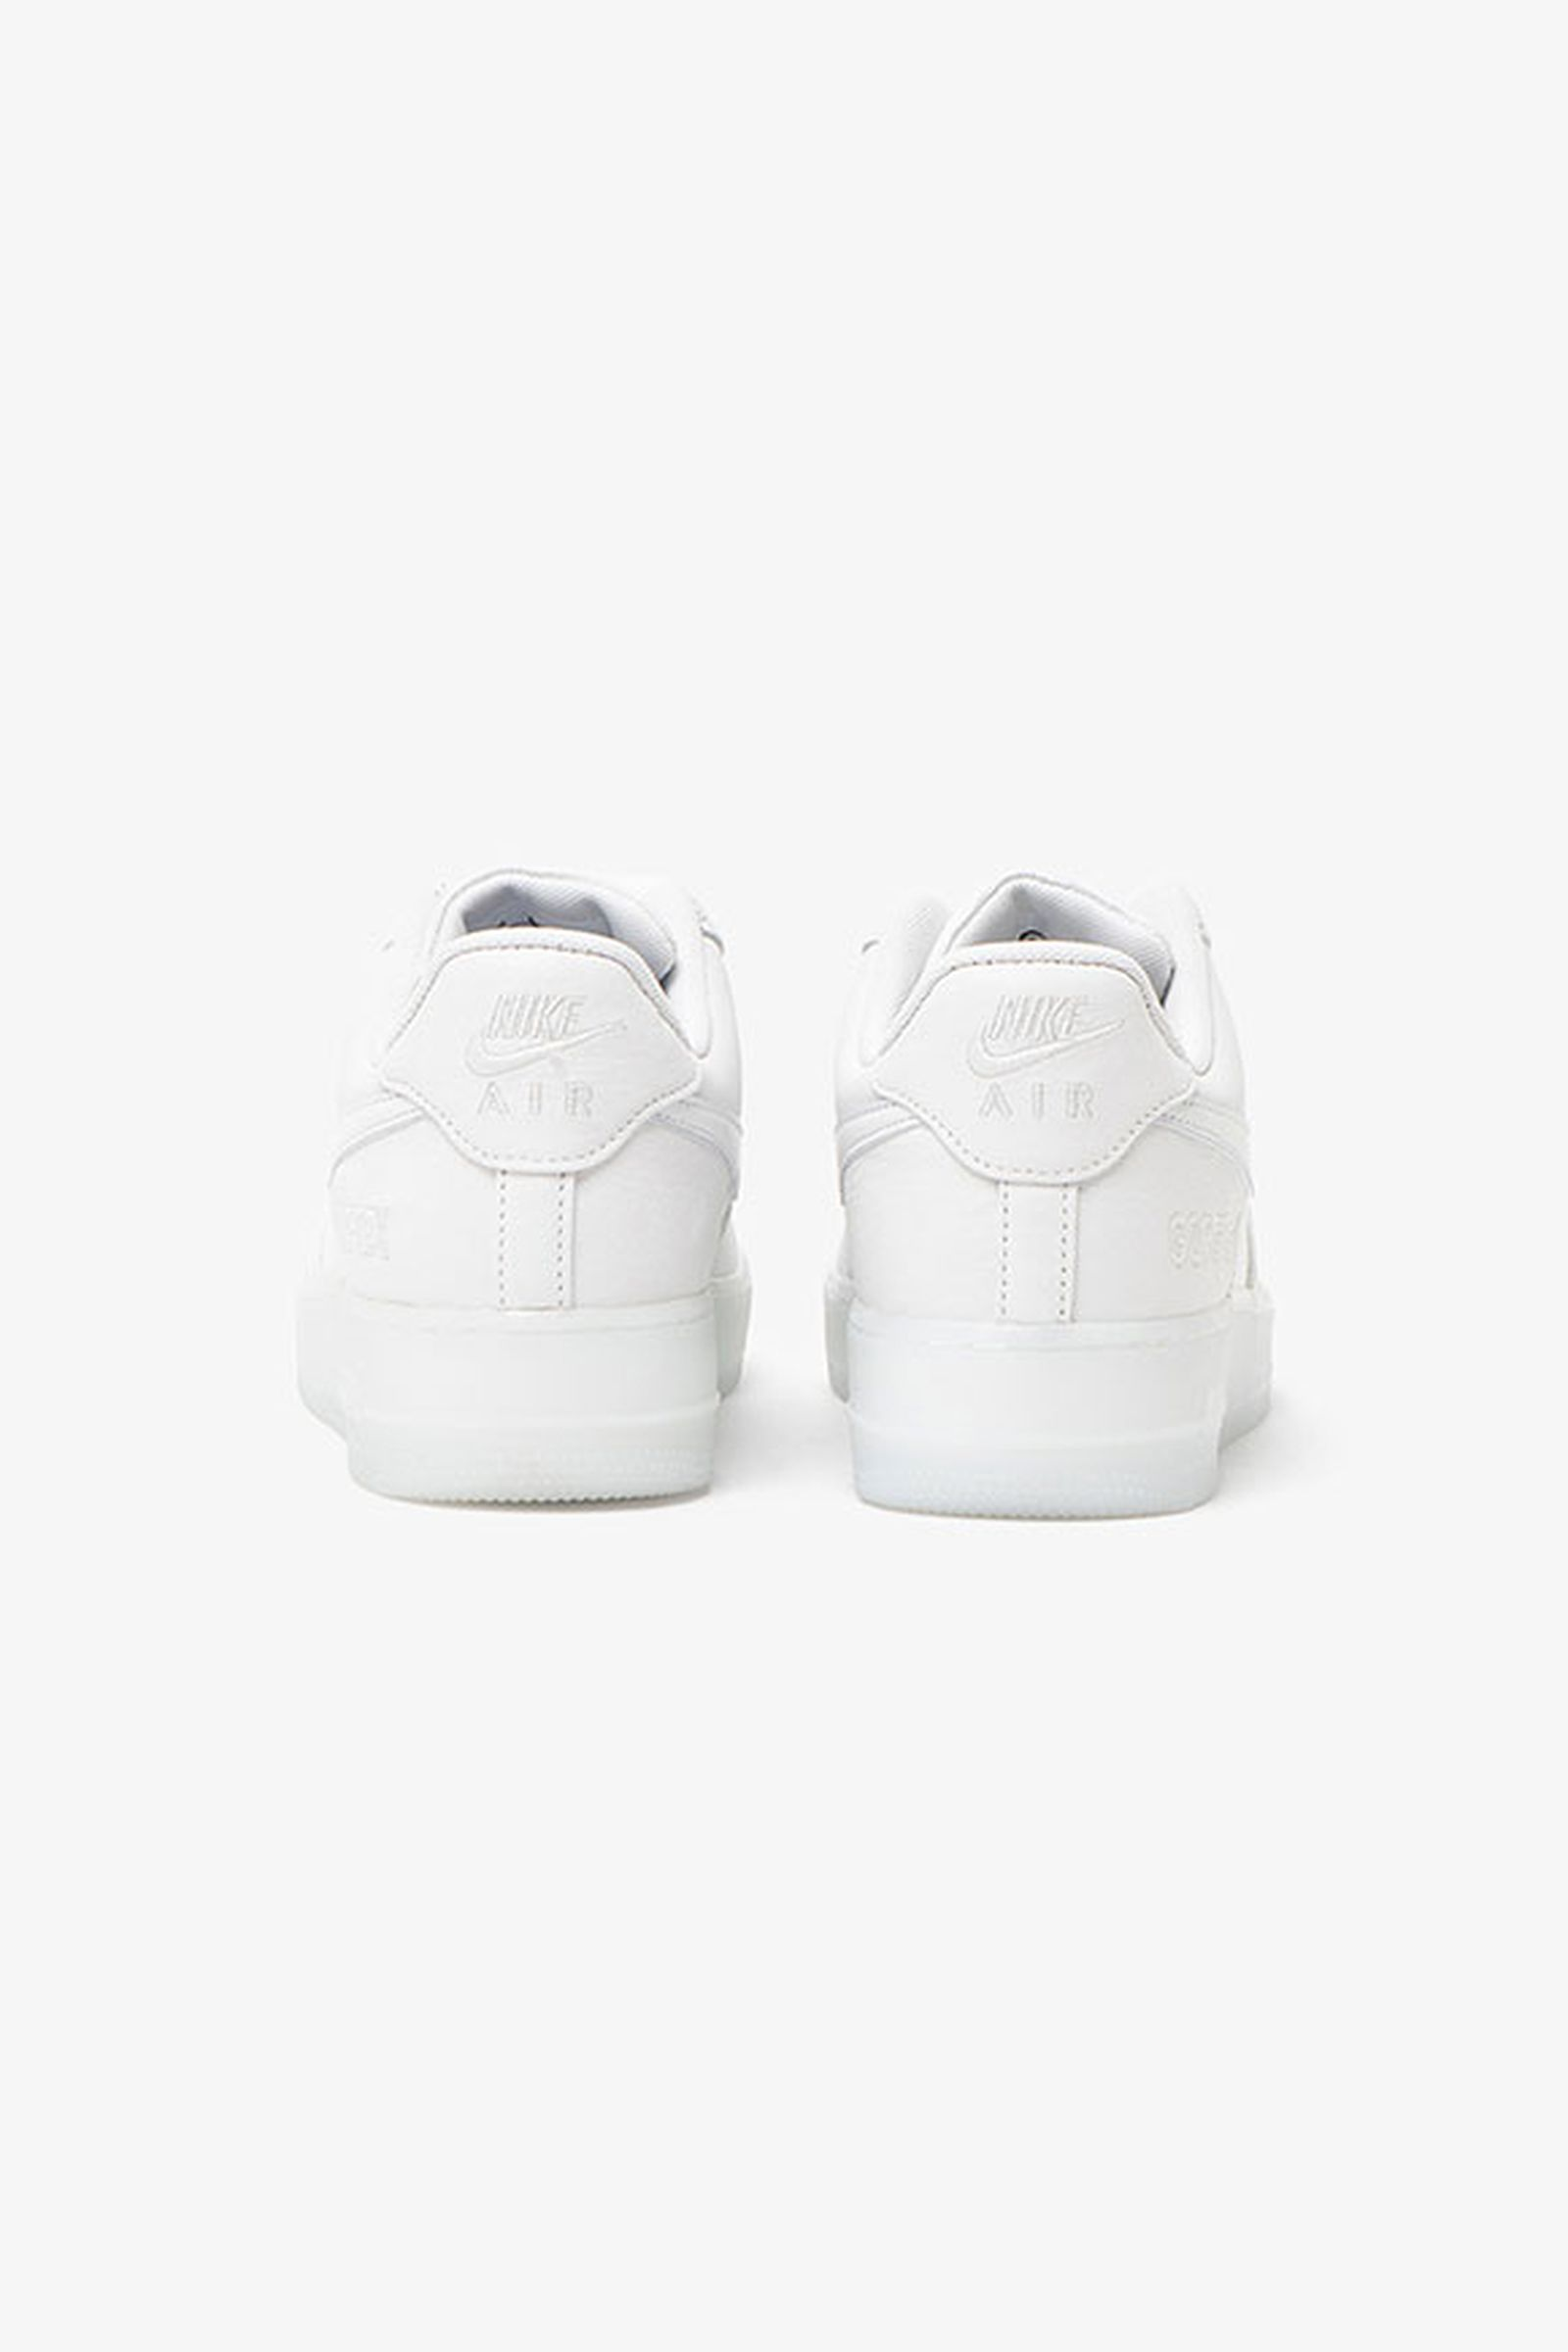 nike-air-force-1-gore-tex-white-release-date-price-04